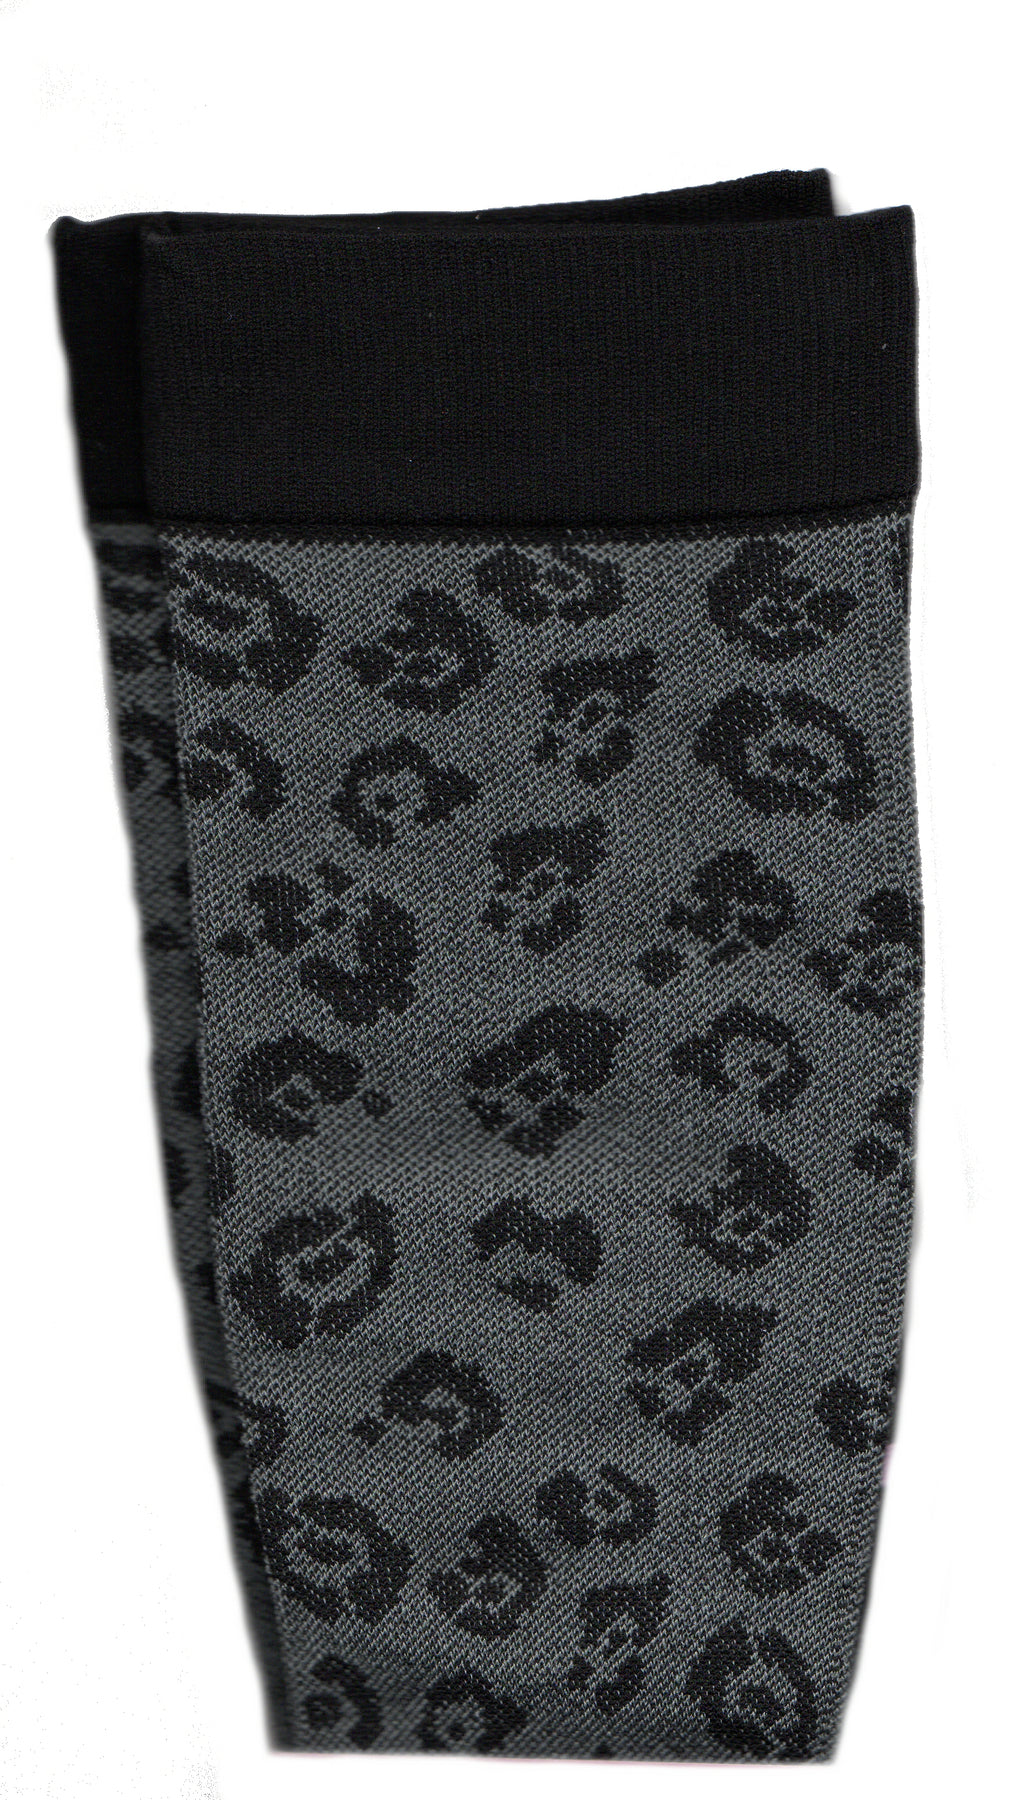 Dr Motion Everyday Womens Compression Leopard Sock starts with a Grey background and has a Black Leopard Print over it. The Cuffs, Heels and Toes are Black.